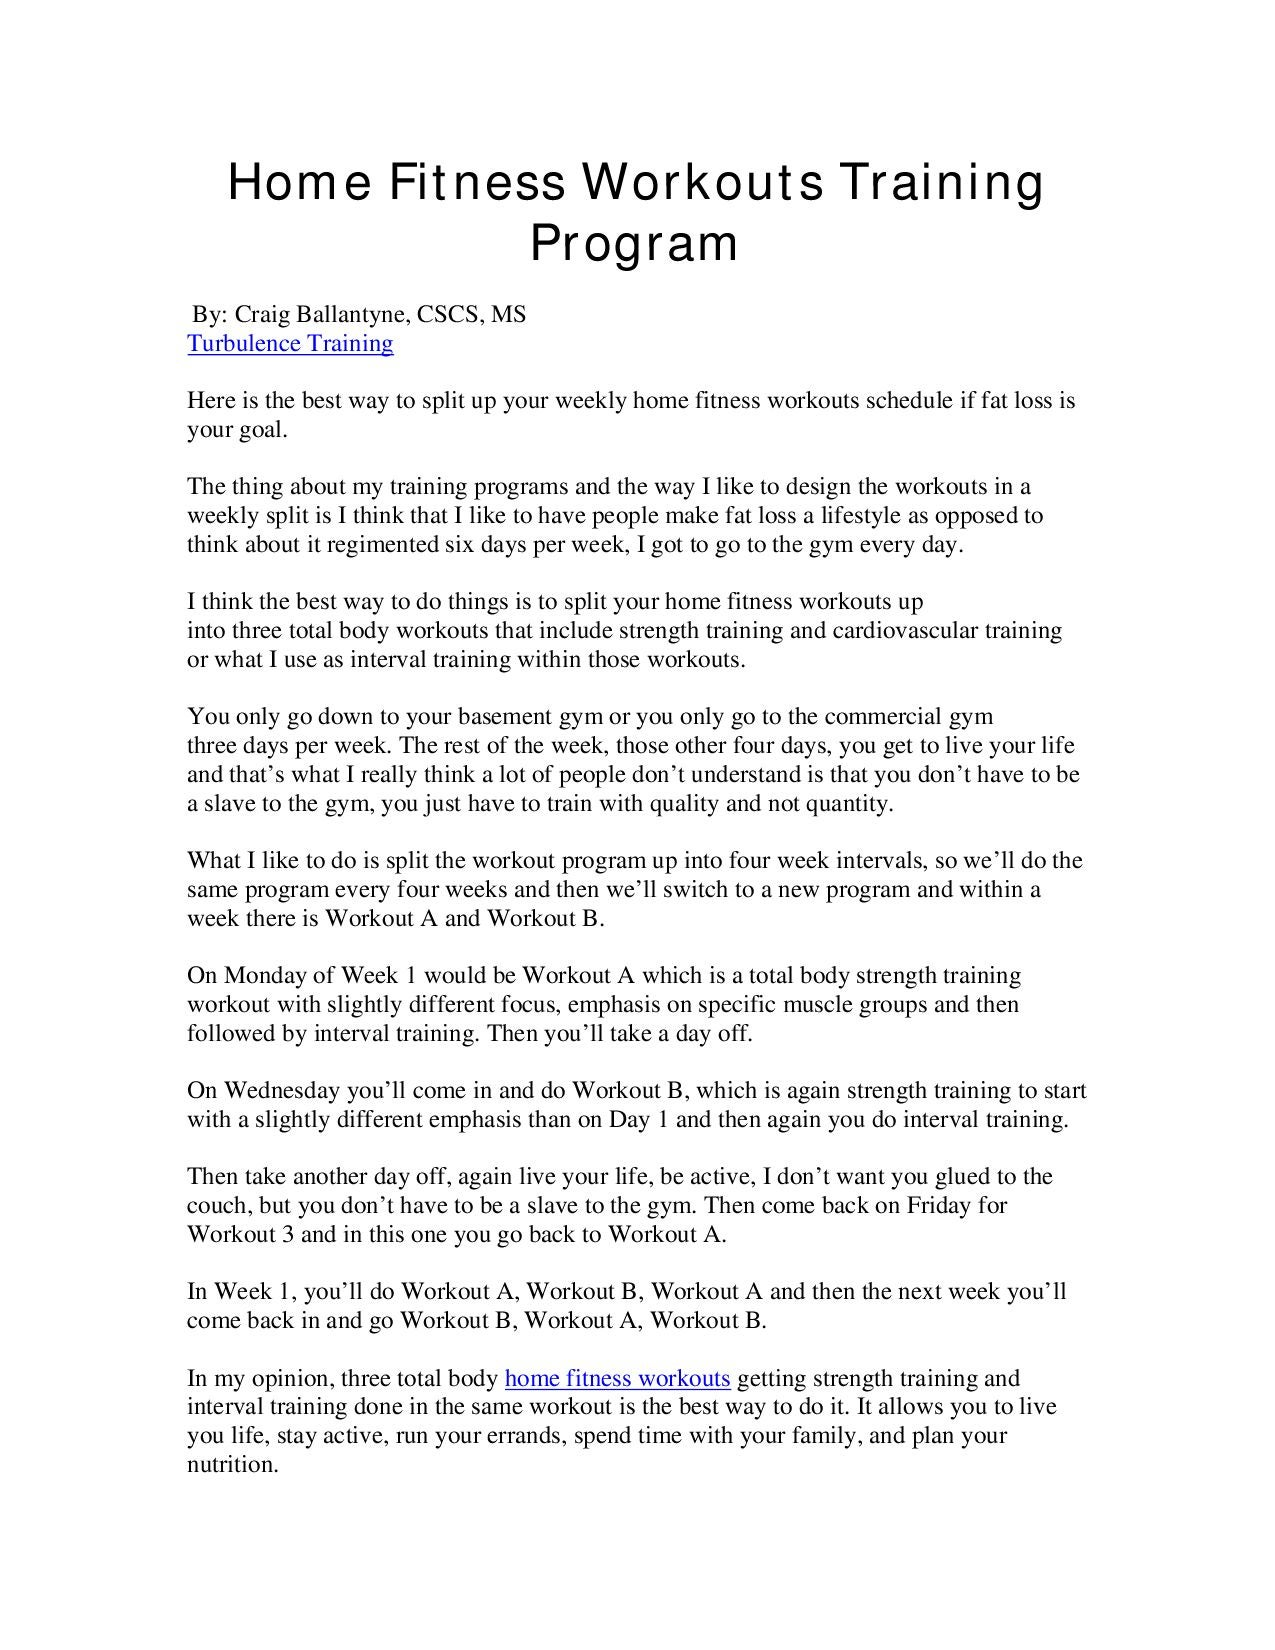 Home Fitness Workouts Training Program By James Thompson Issuu